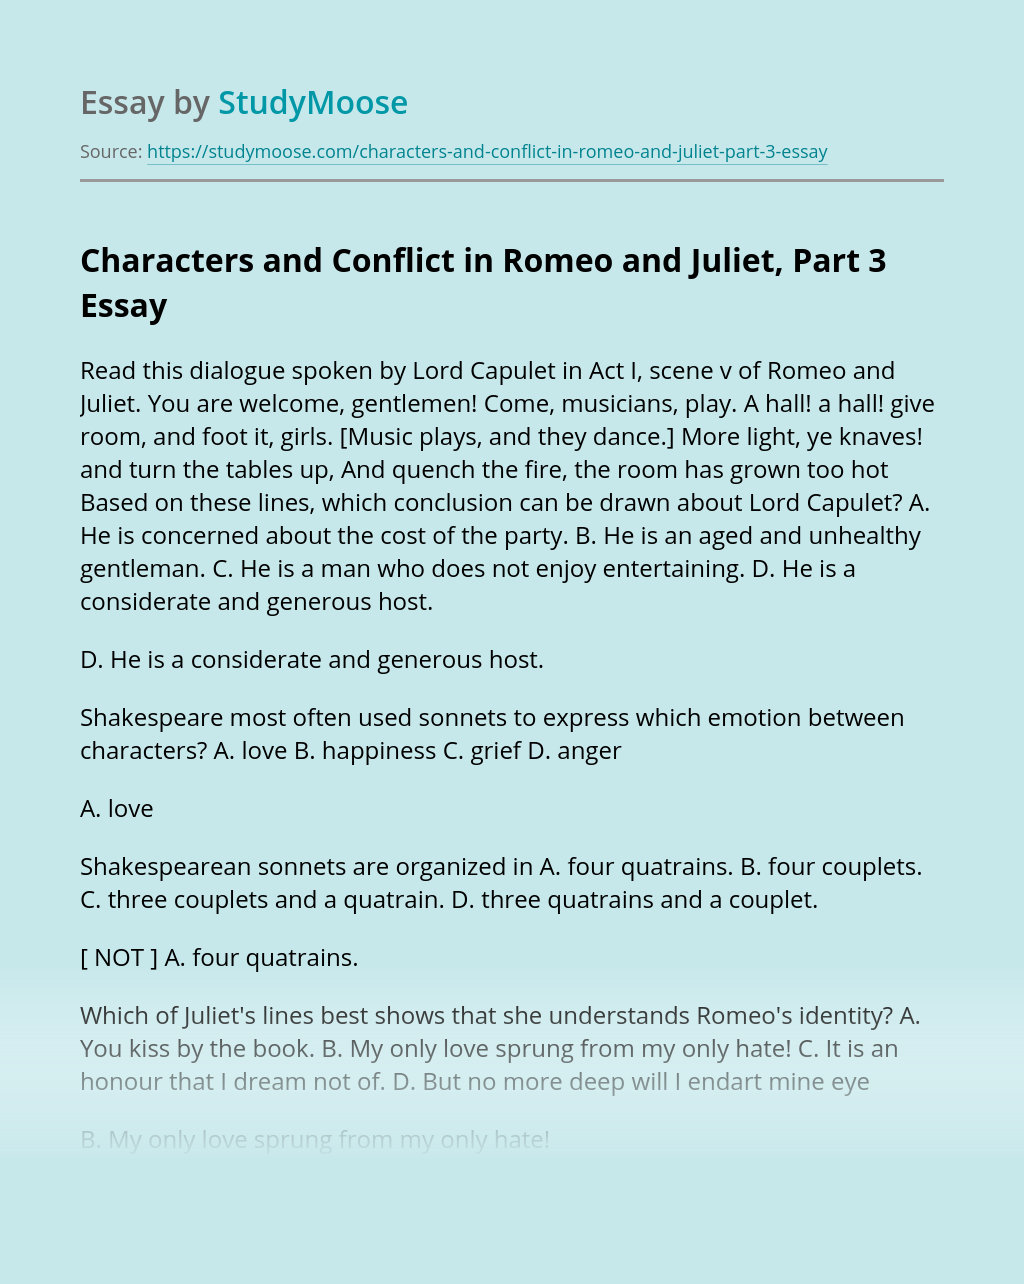 Characters and Conflict in Romeo and Juliet, Part 3